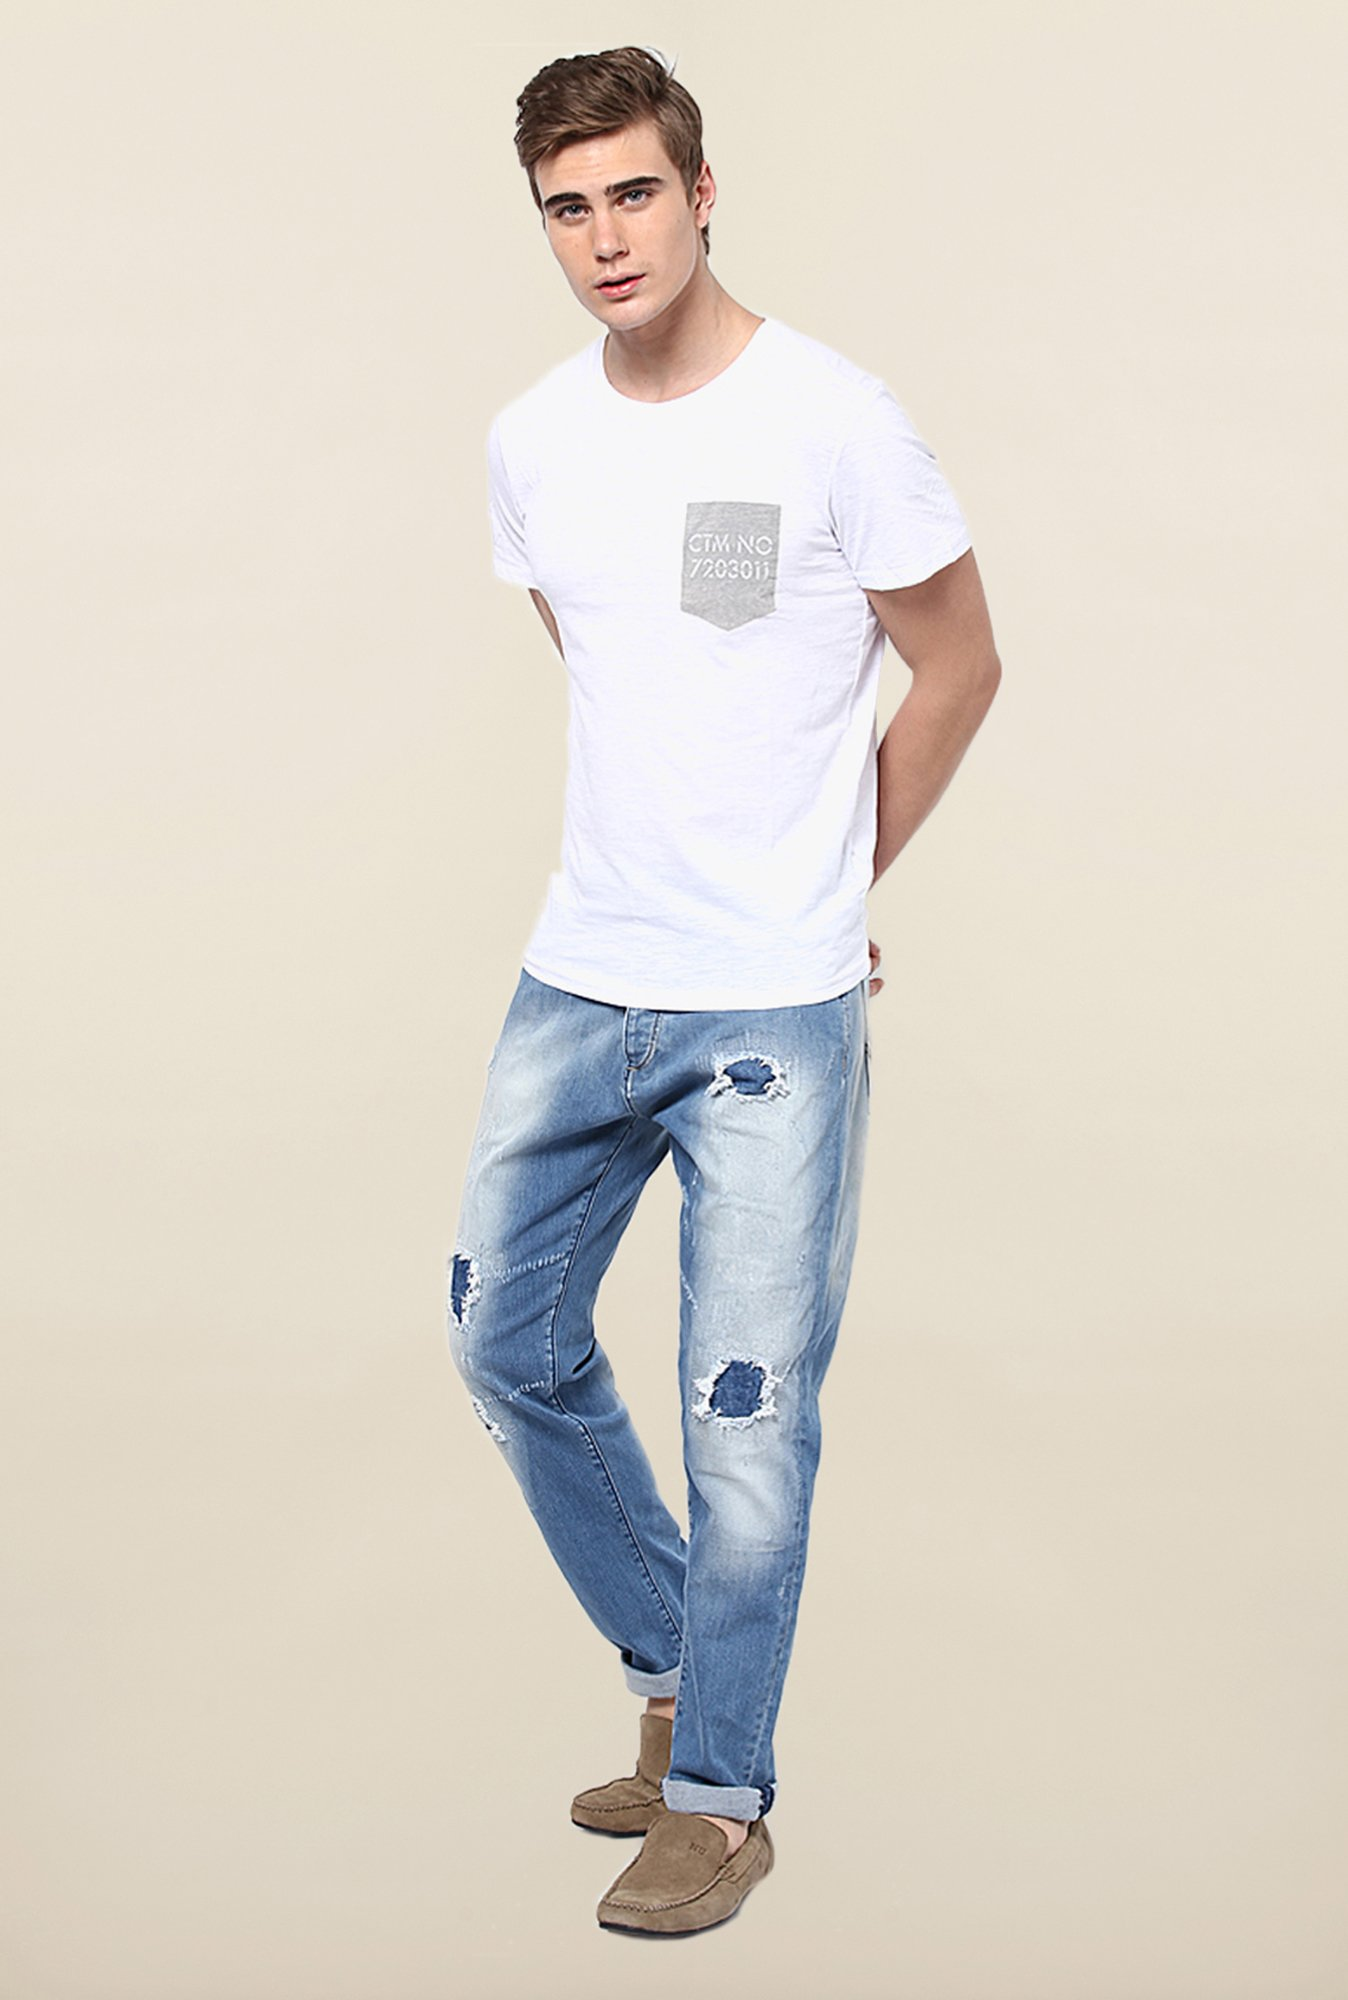 Jack & Jones Blue Distressed Jeans